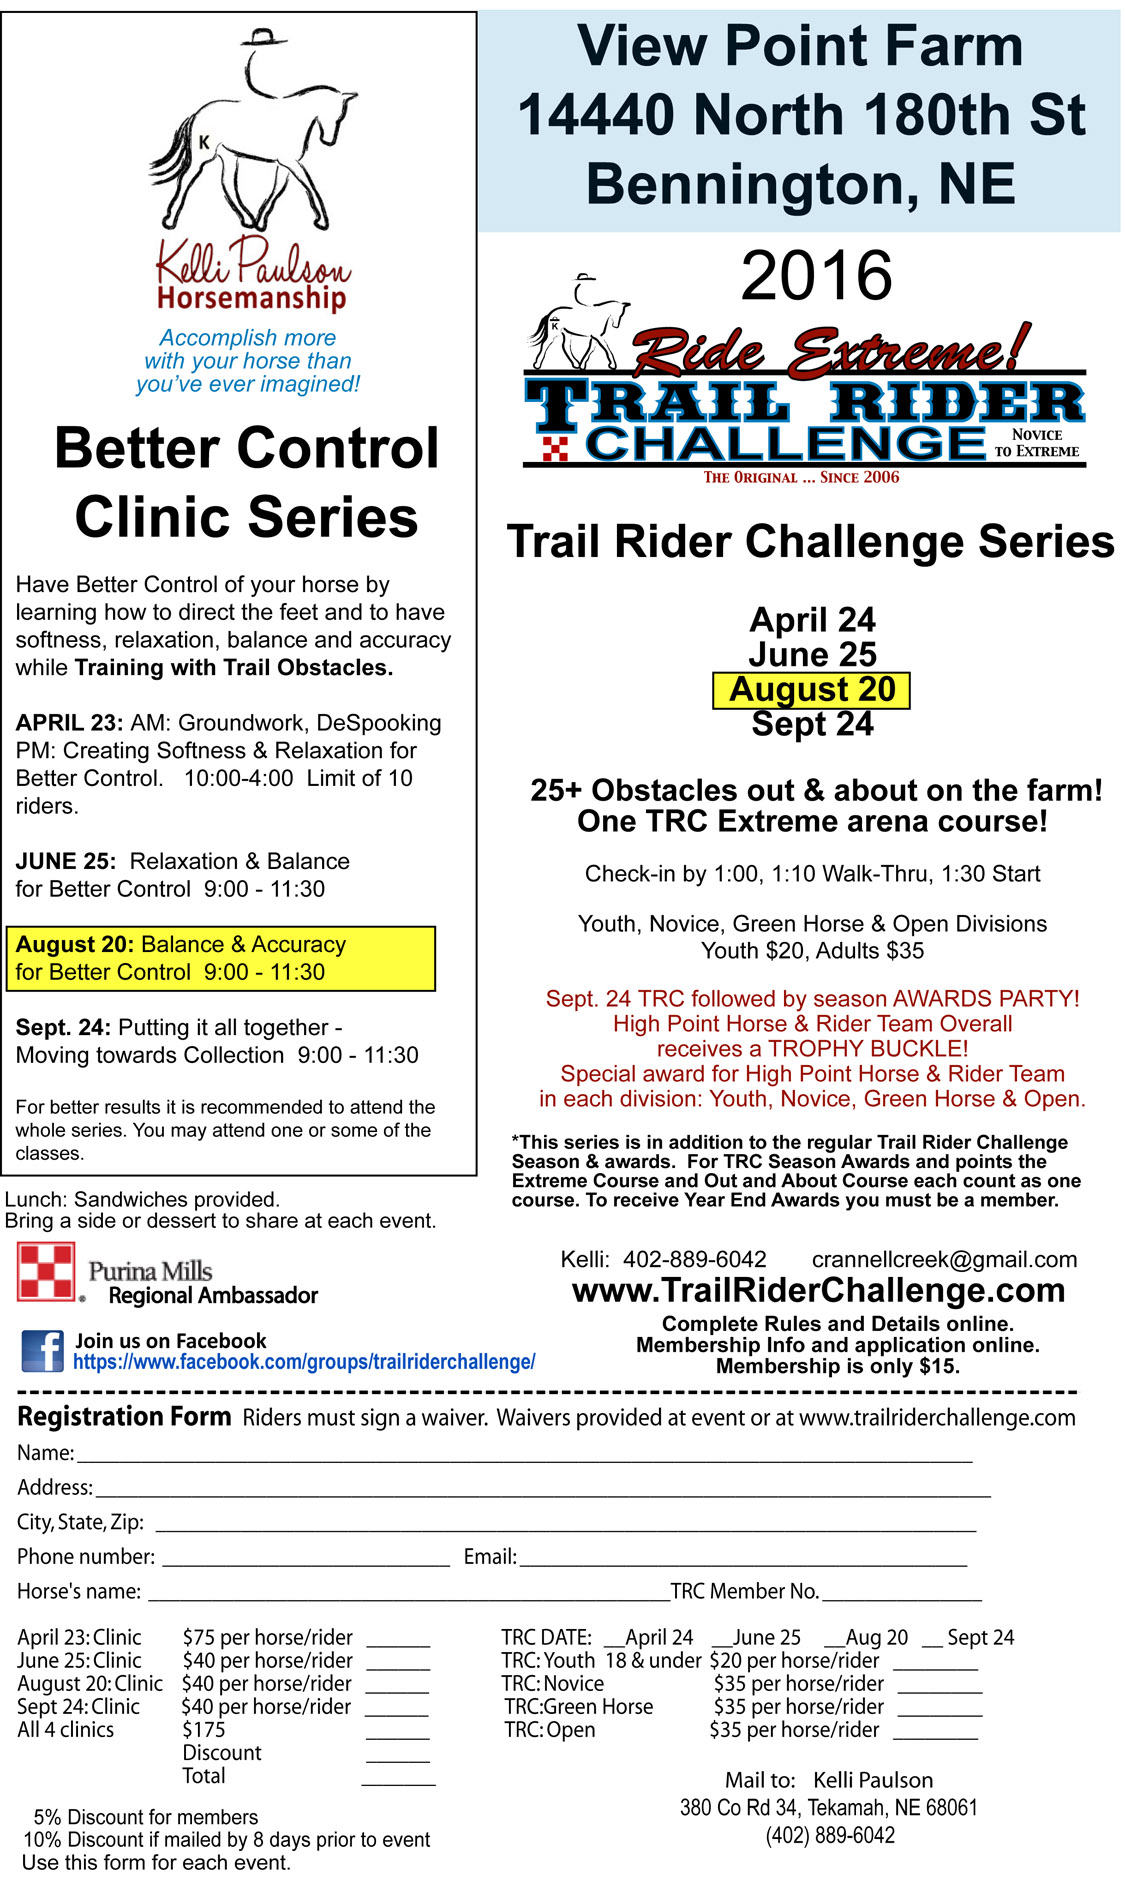 Trail Rider Challenge, View Point Farms